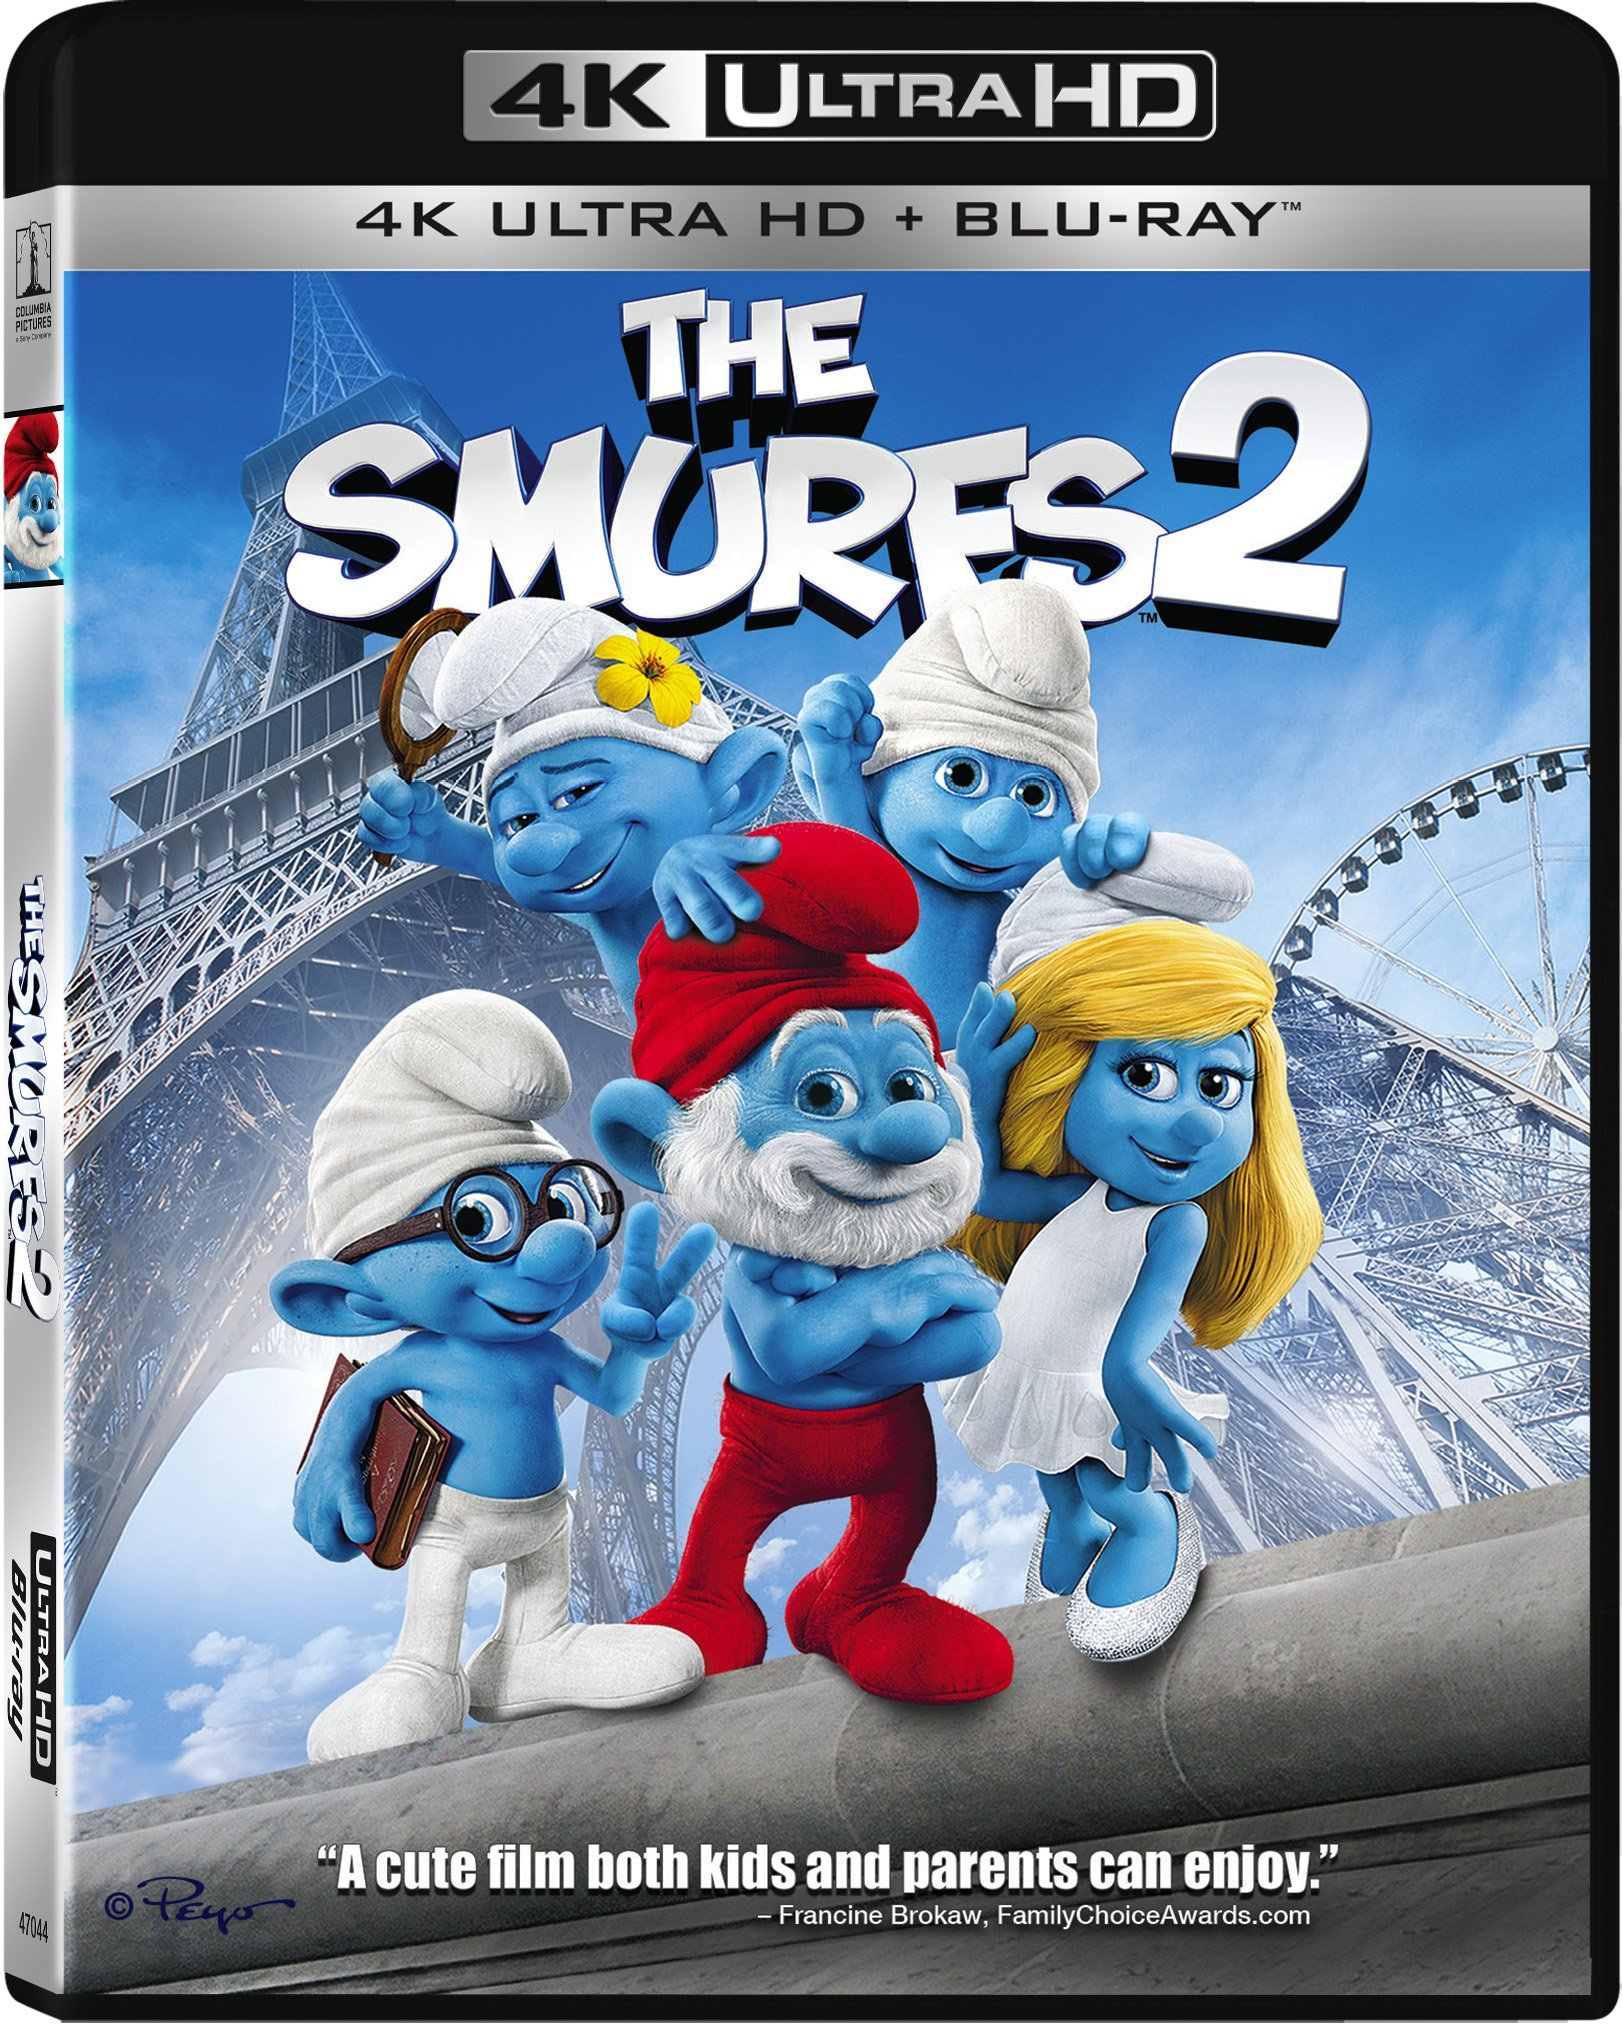 4K Blu-ray : The Smurfs 2 (With Blu-Ray, Ultraviolet Digital Copy, 2 Disc)